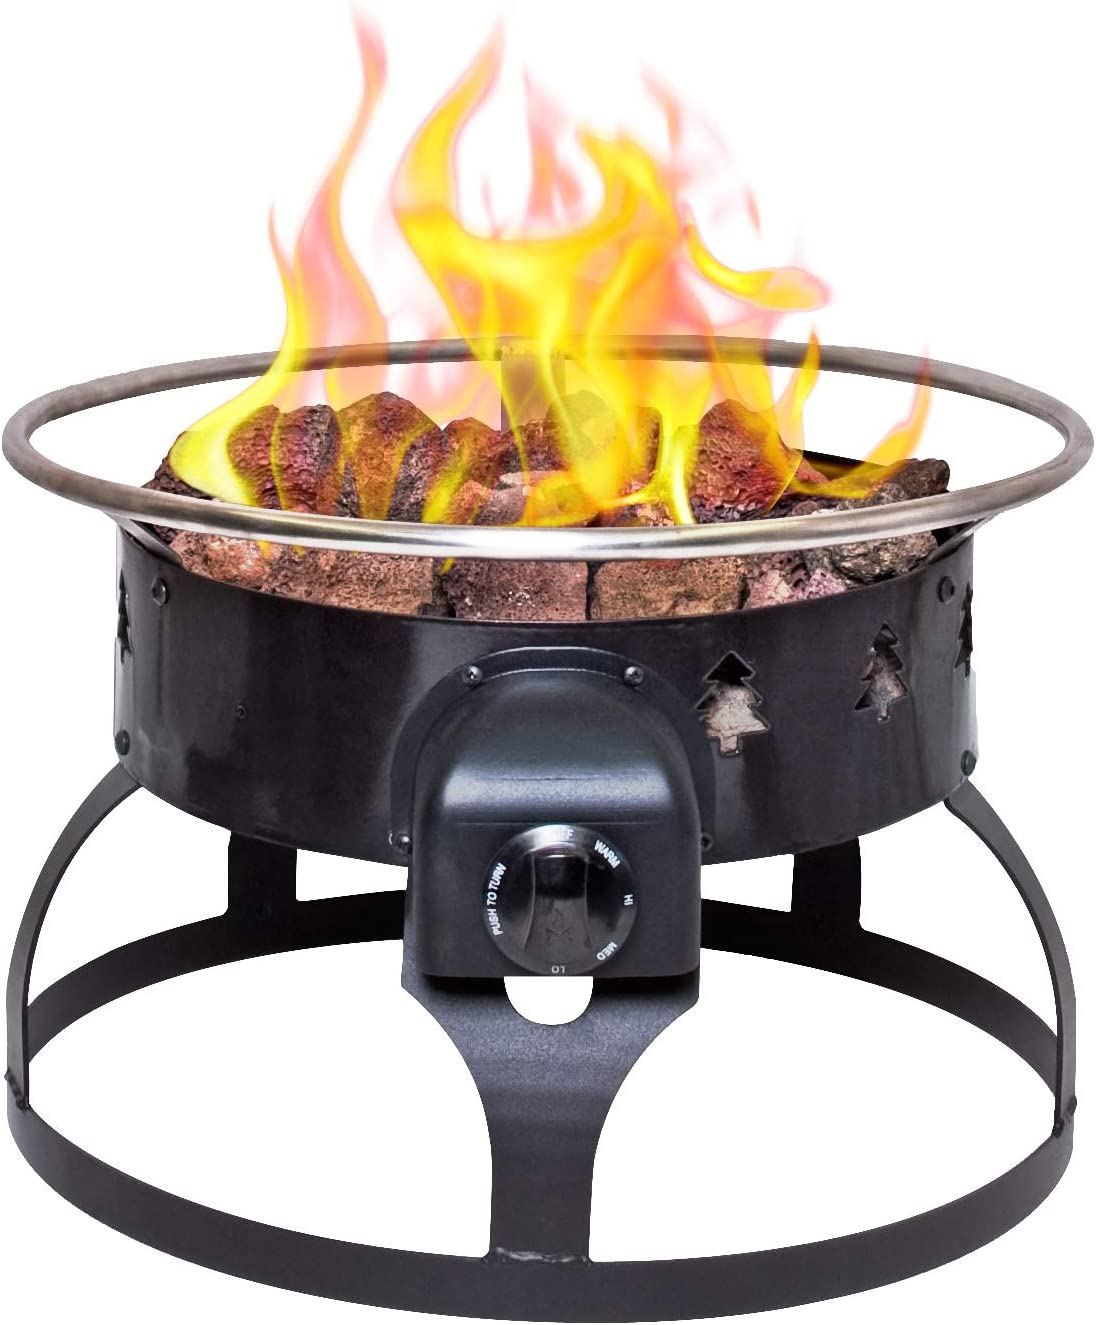 Camp Chef Redwood Portable Propane Fire Pit Sports Outdoors Amazon Com